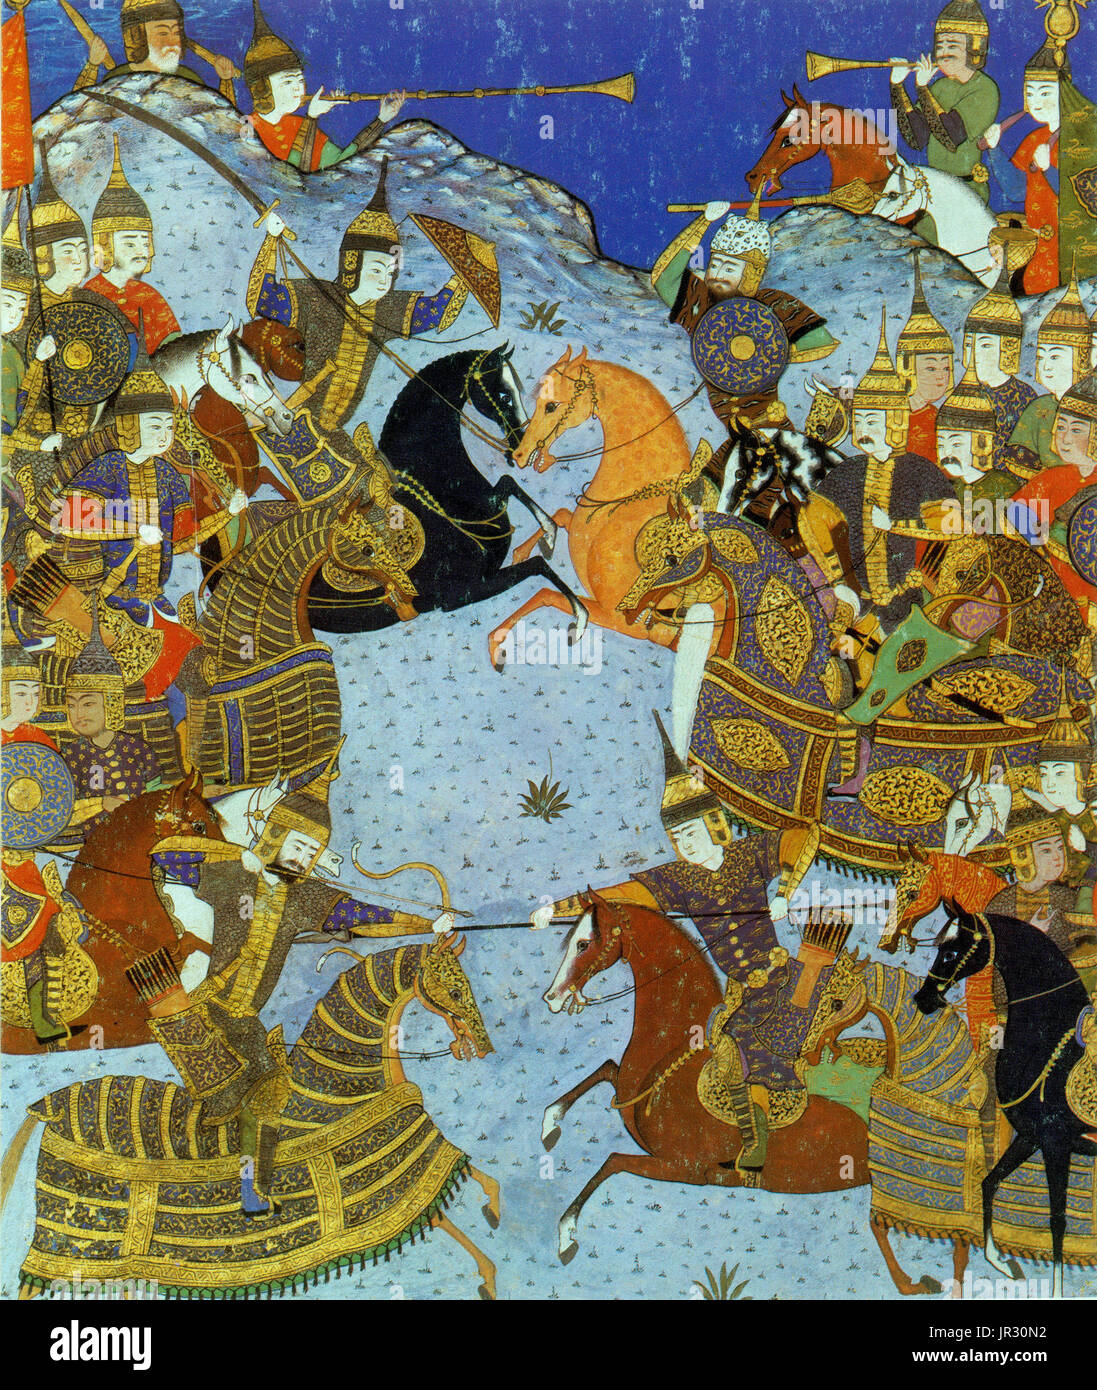 Shahnameh,National Epic of Greater Iran - Stock Image